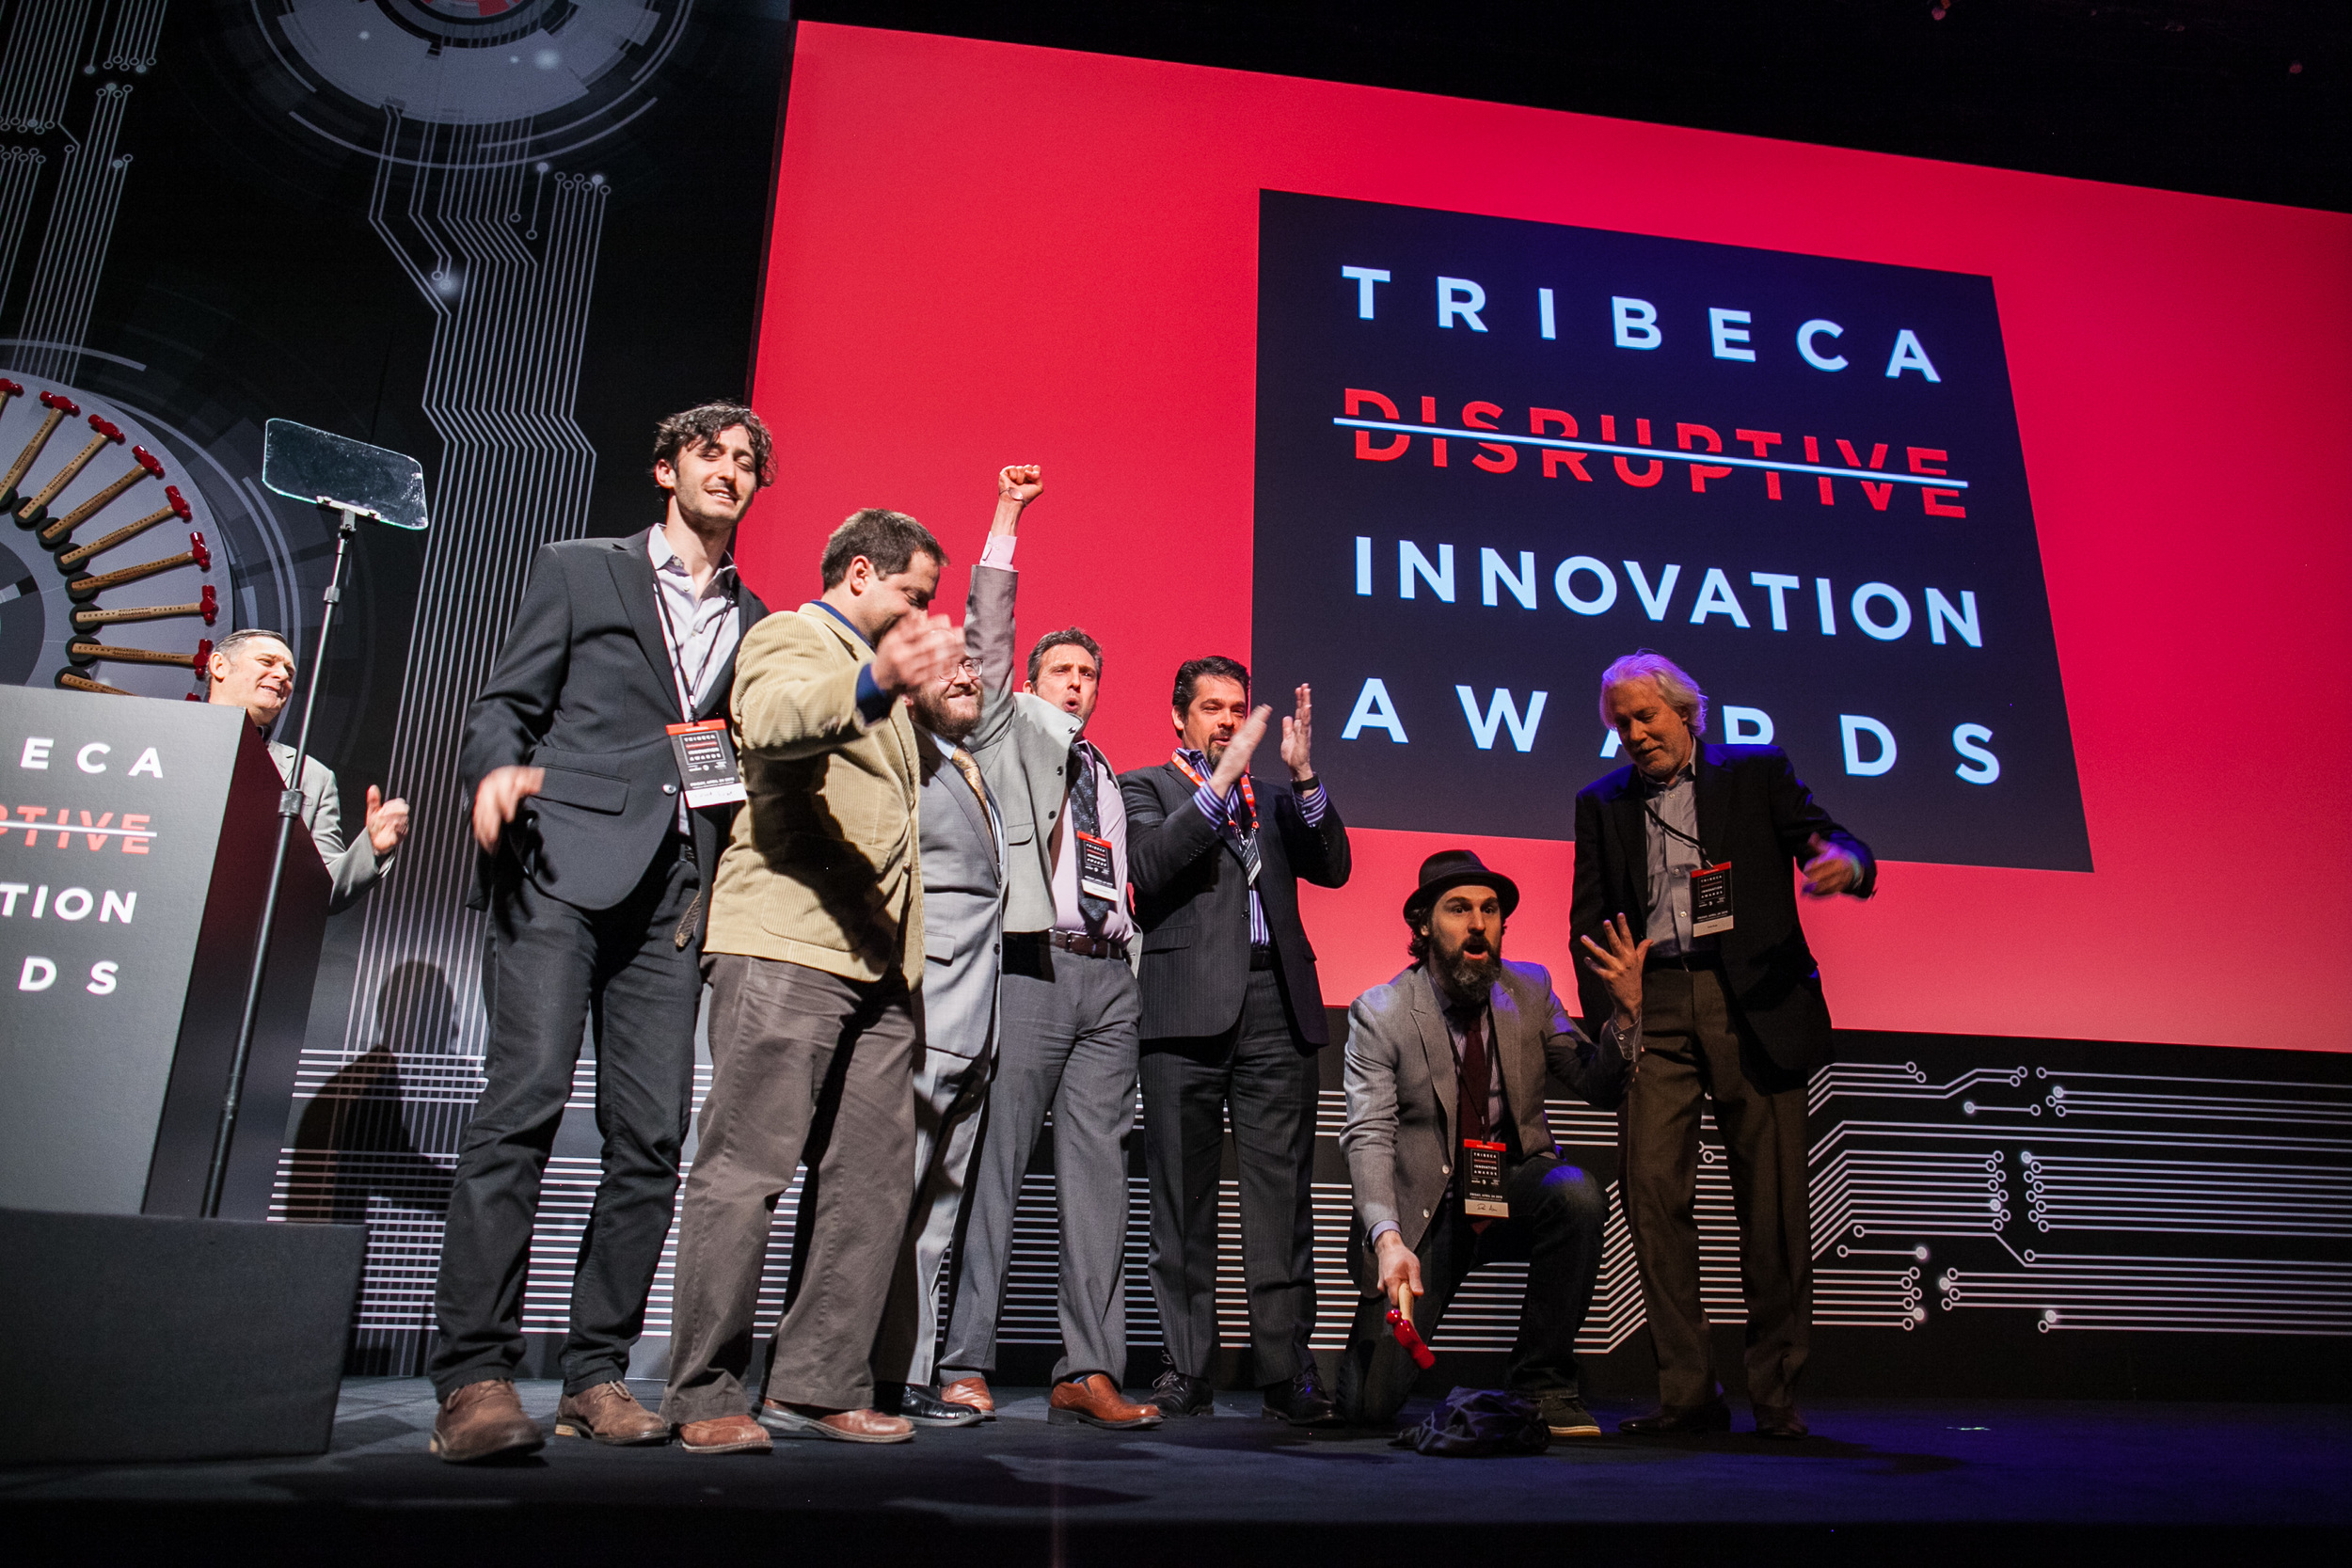 20150424-Tribeca Disruptive Innovation Awards-0348.jpg